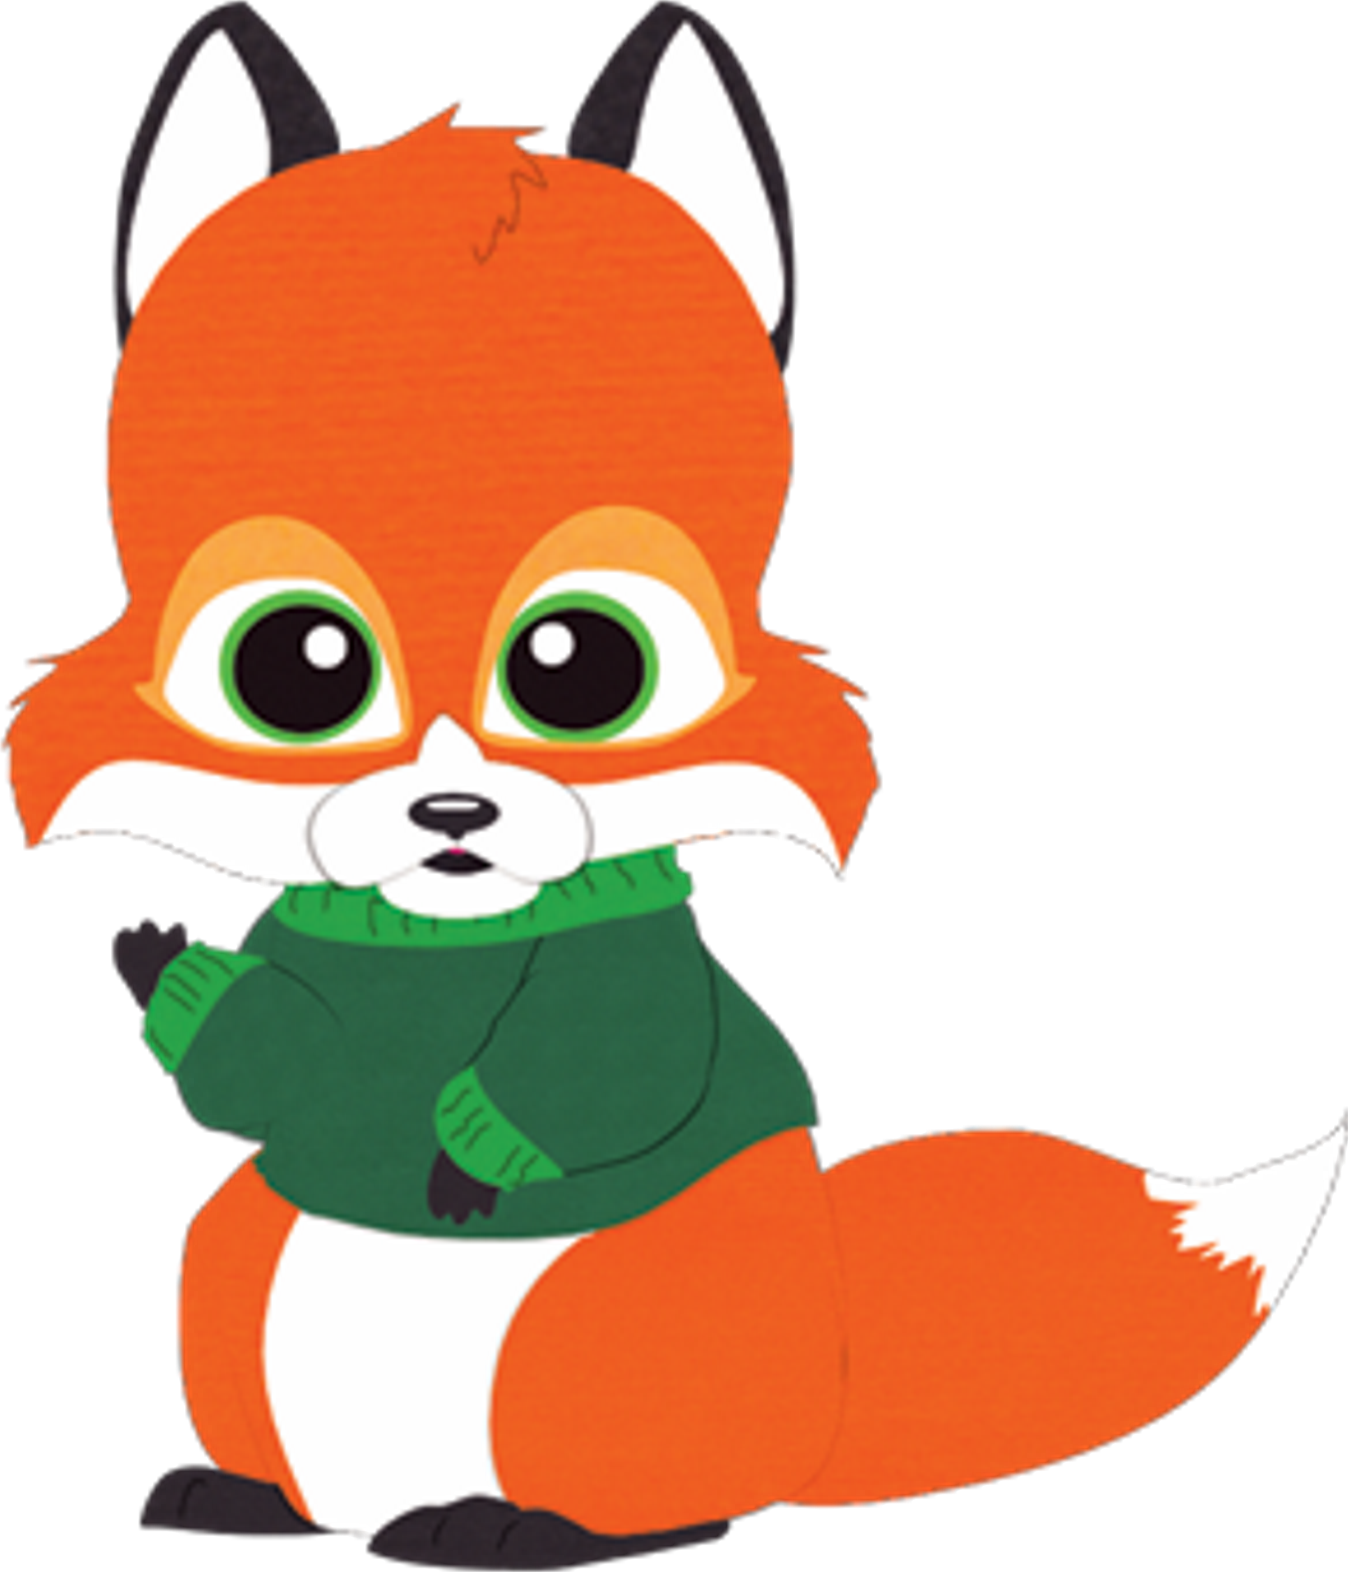 Woodland clipart orange fox. Image foxy png south